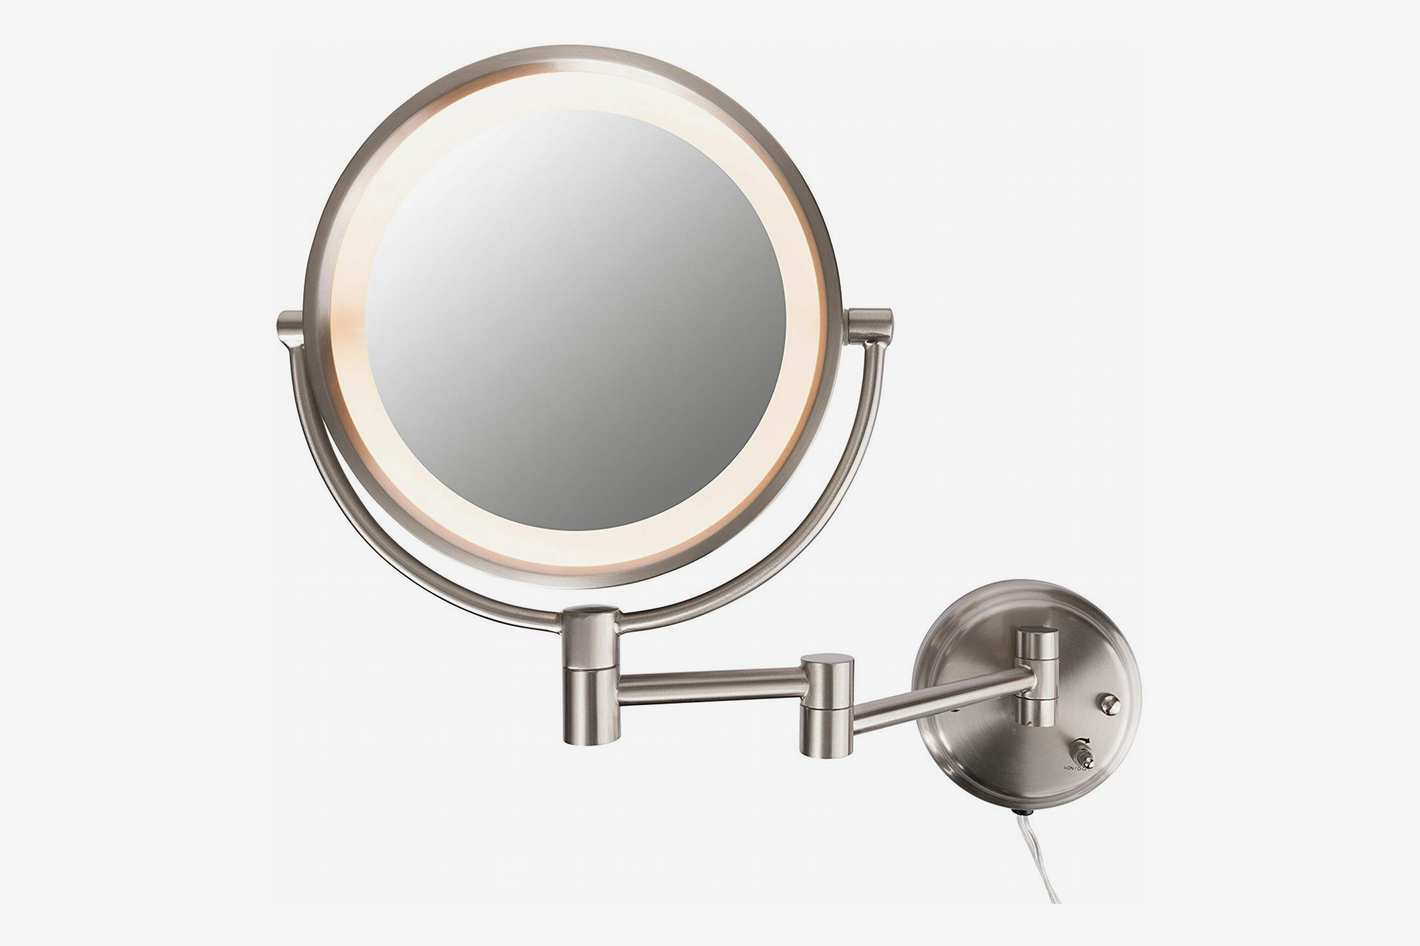 14 Best Lighted Makeup Mirrors 2019